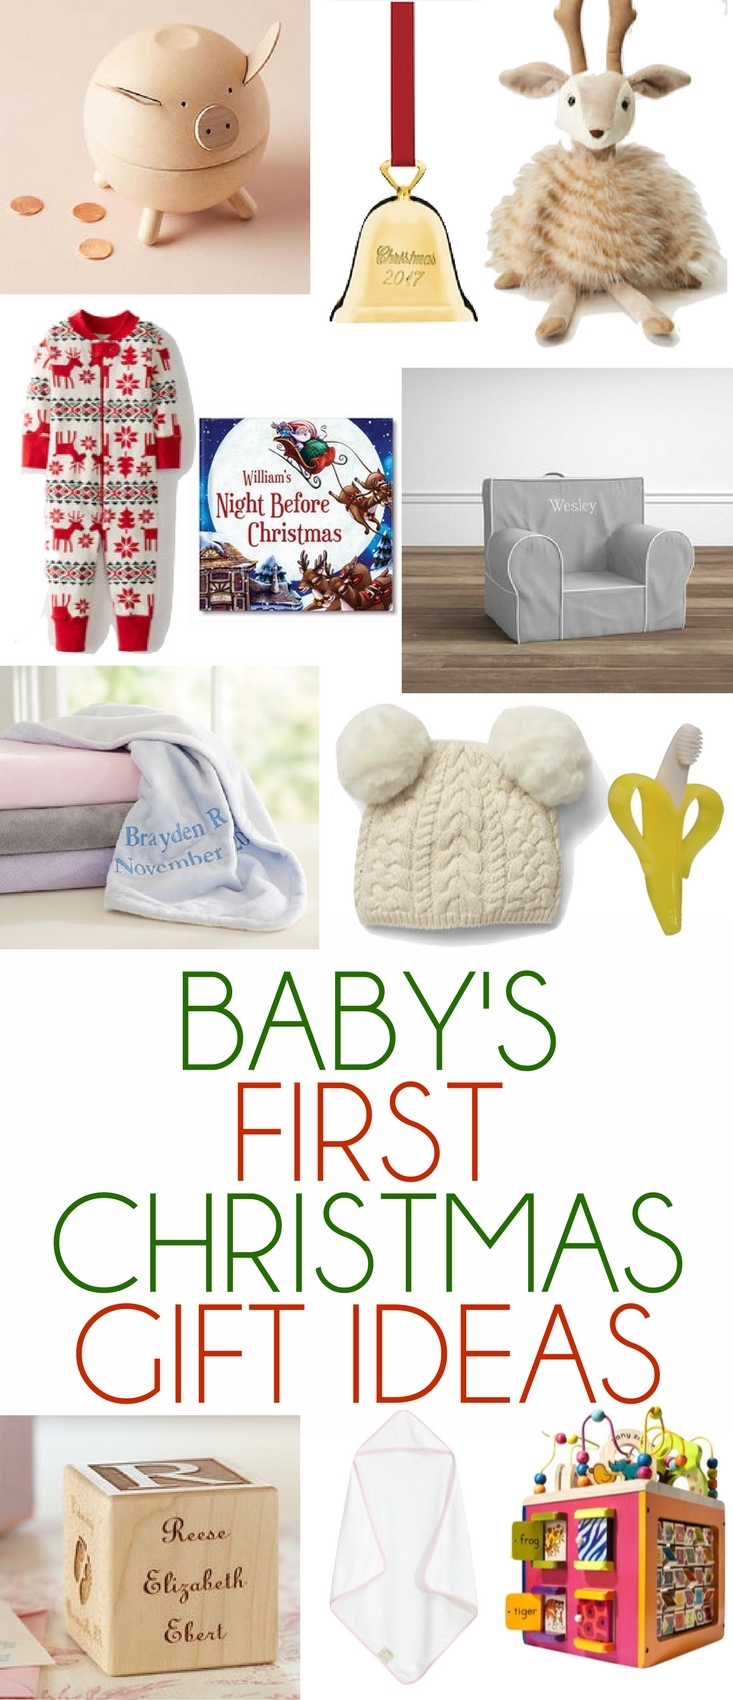 These Are The Best First Christmas Gift Ideas For Babies Under 1   Babyu0027s  First Christmas